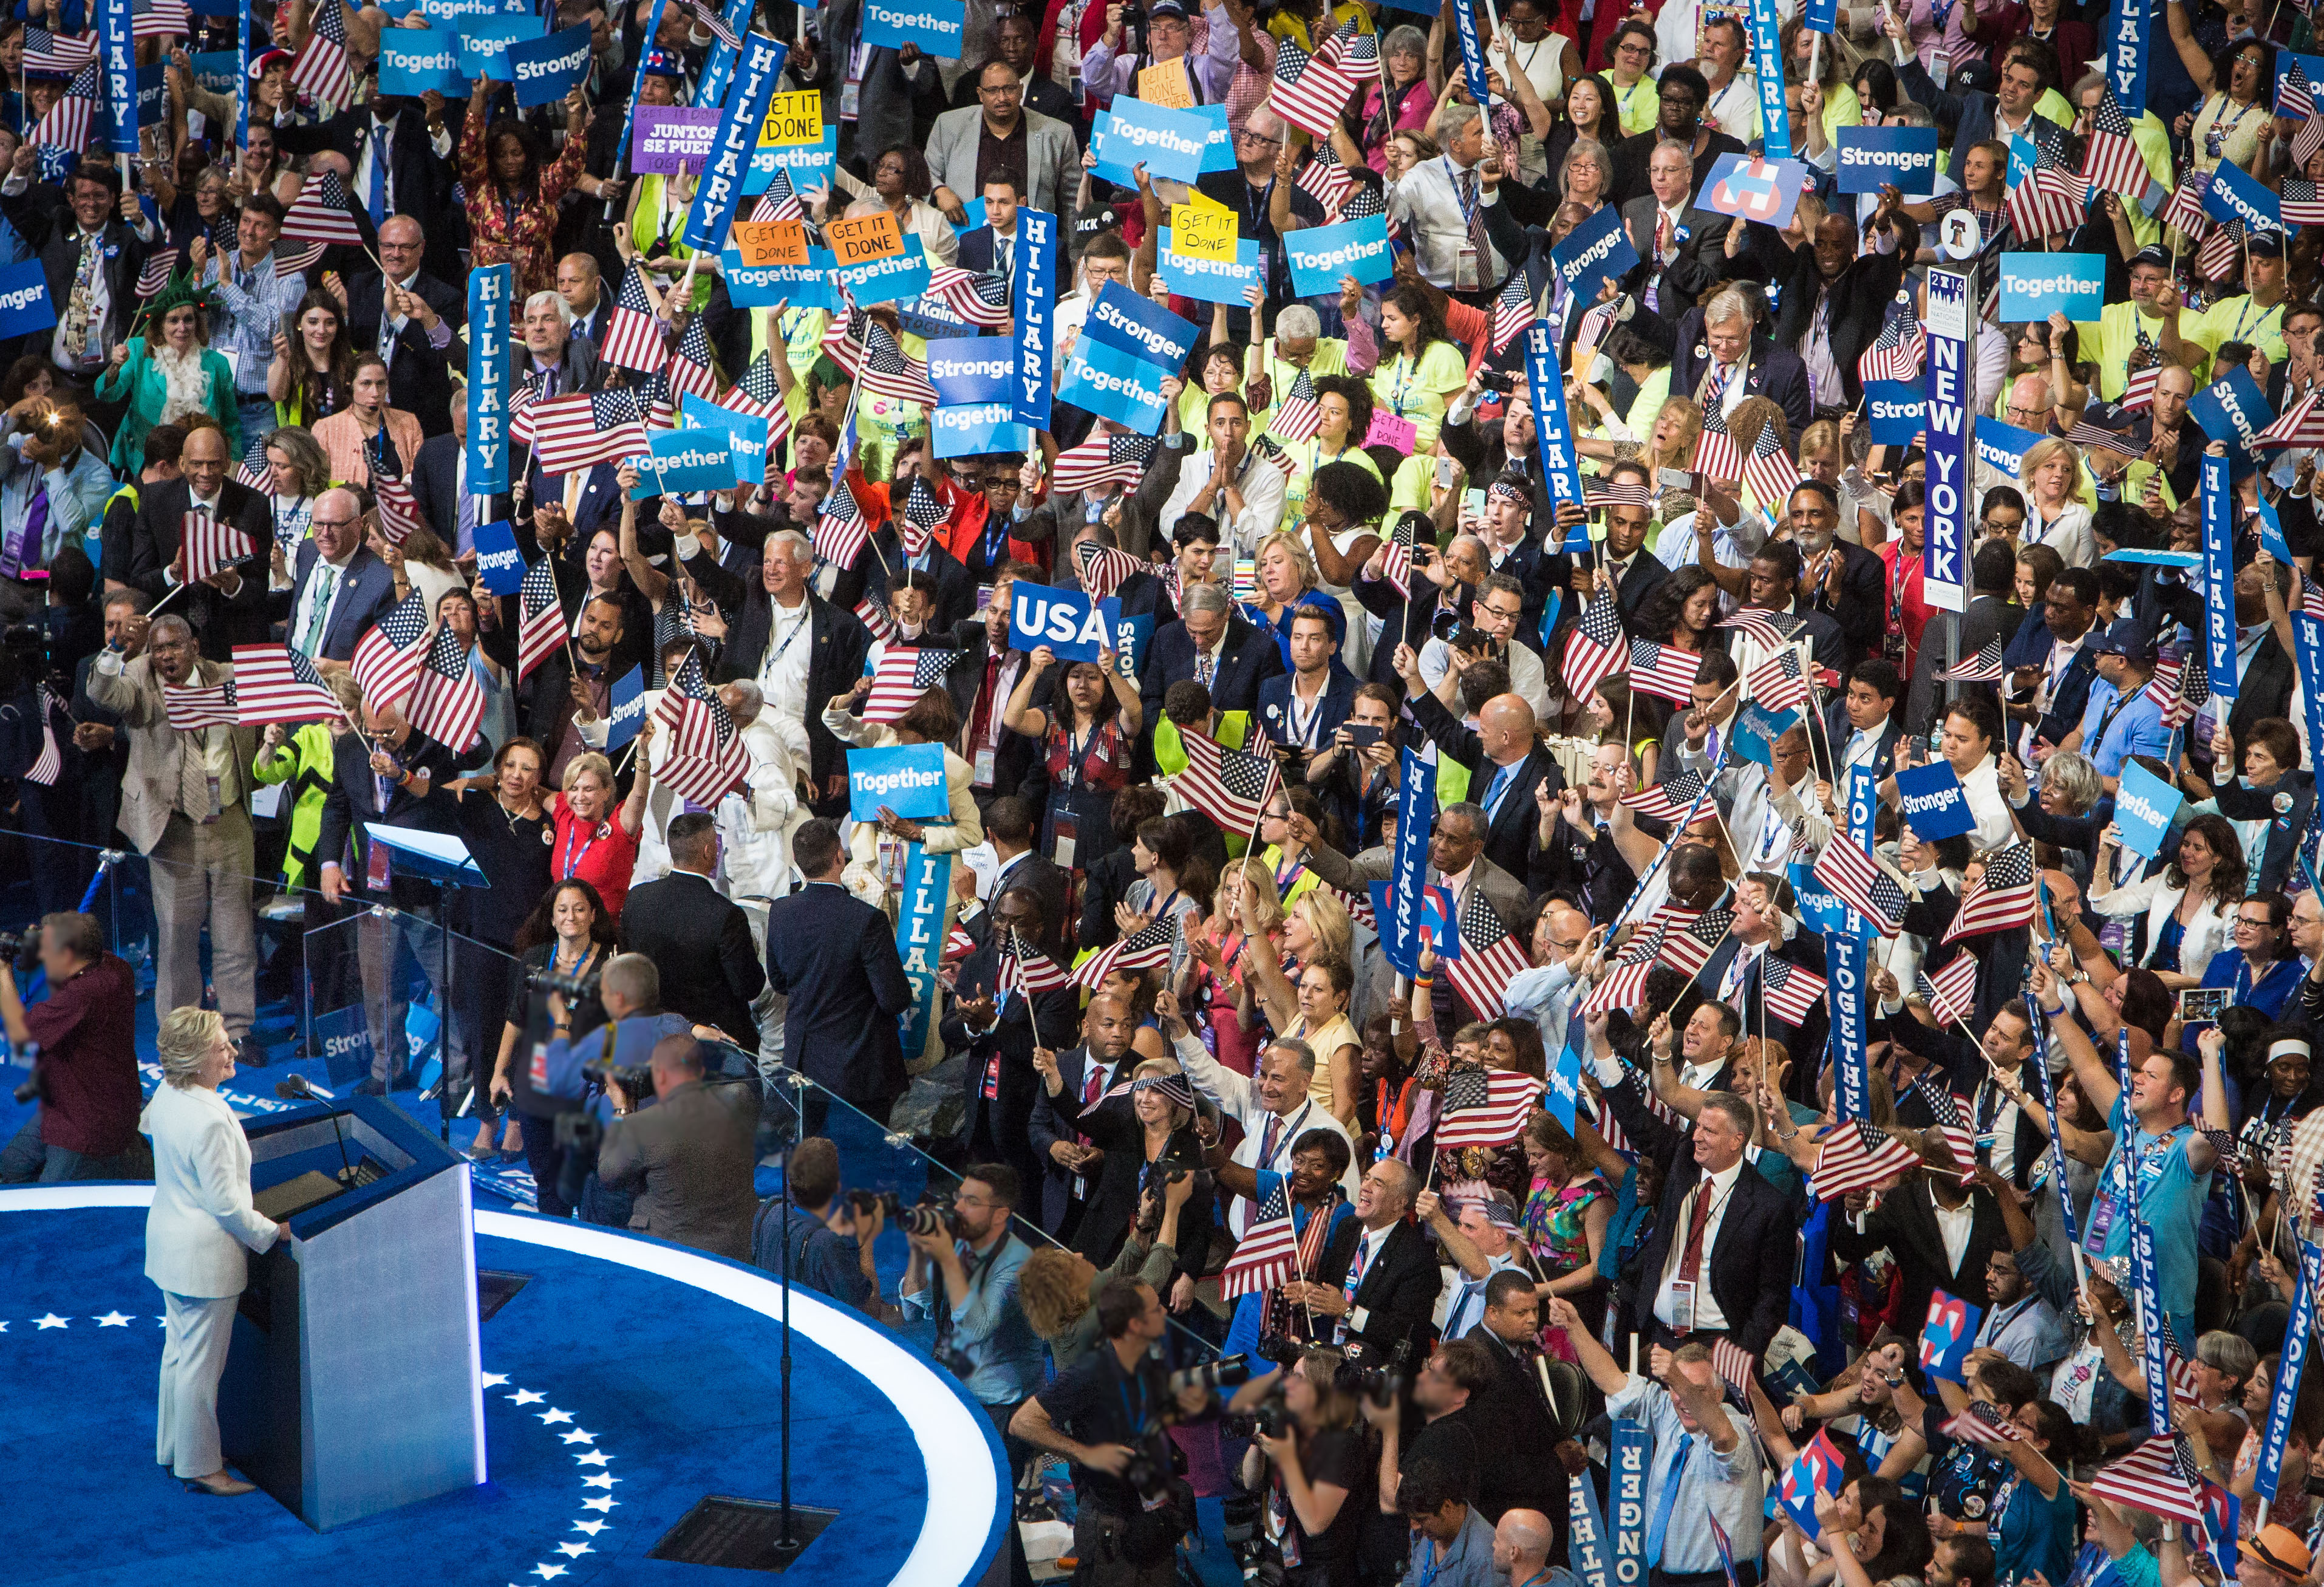 File:Hillary Clinton Speech at Democratic National ...